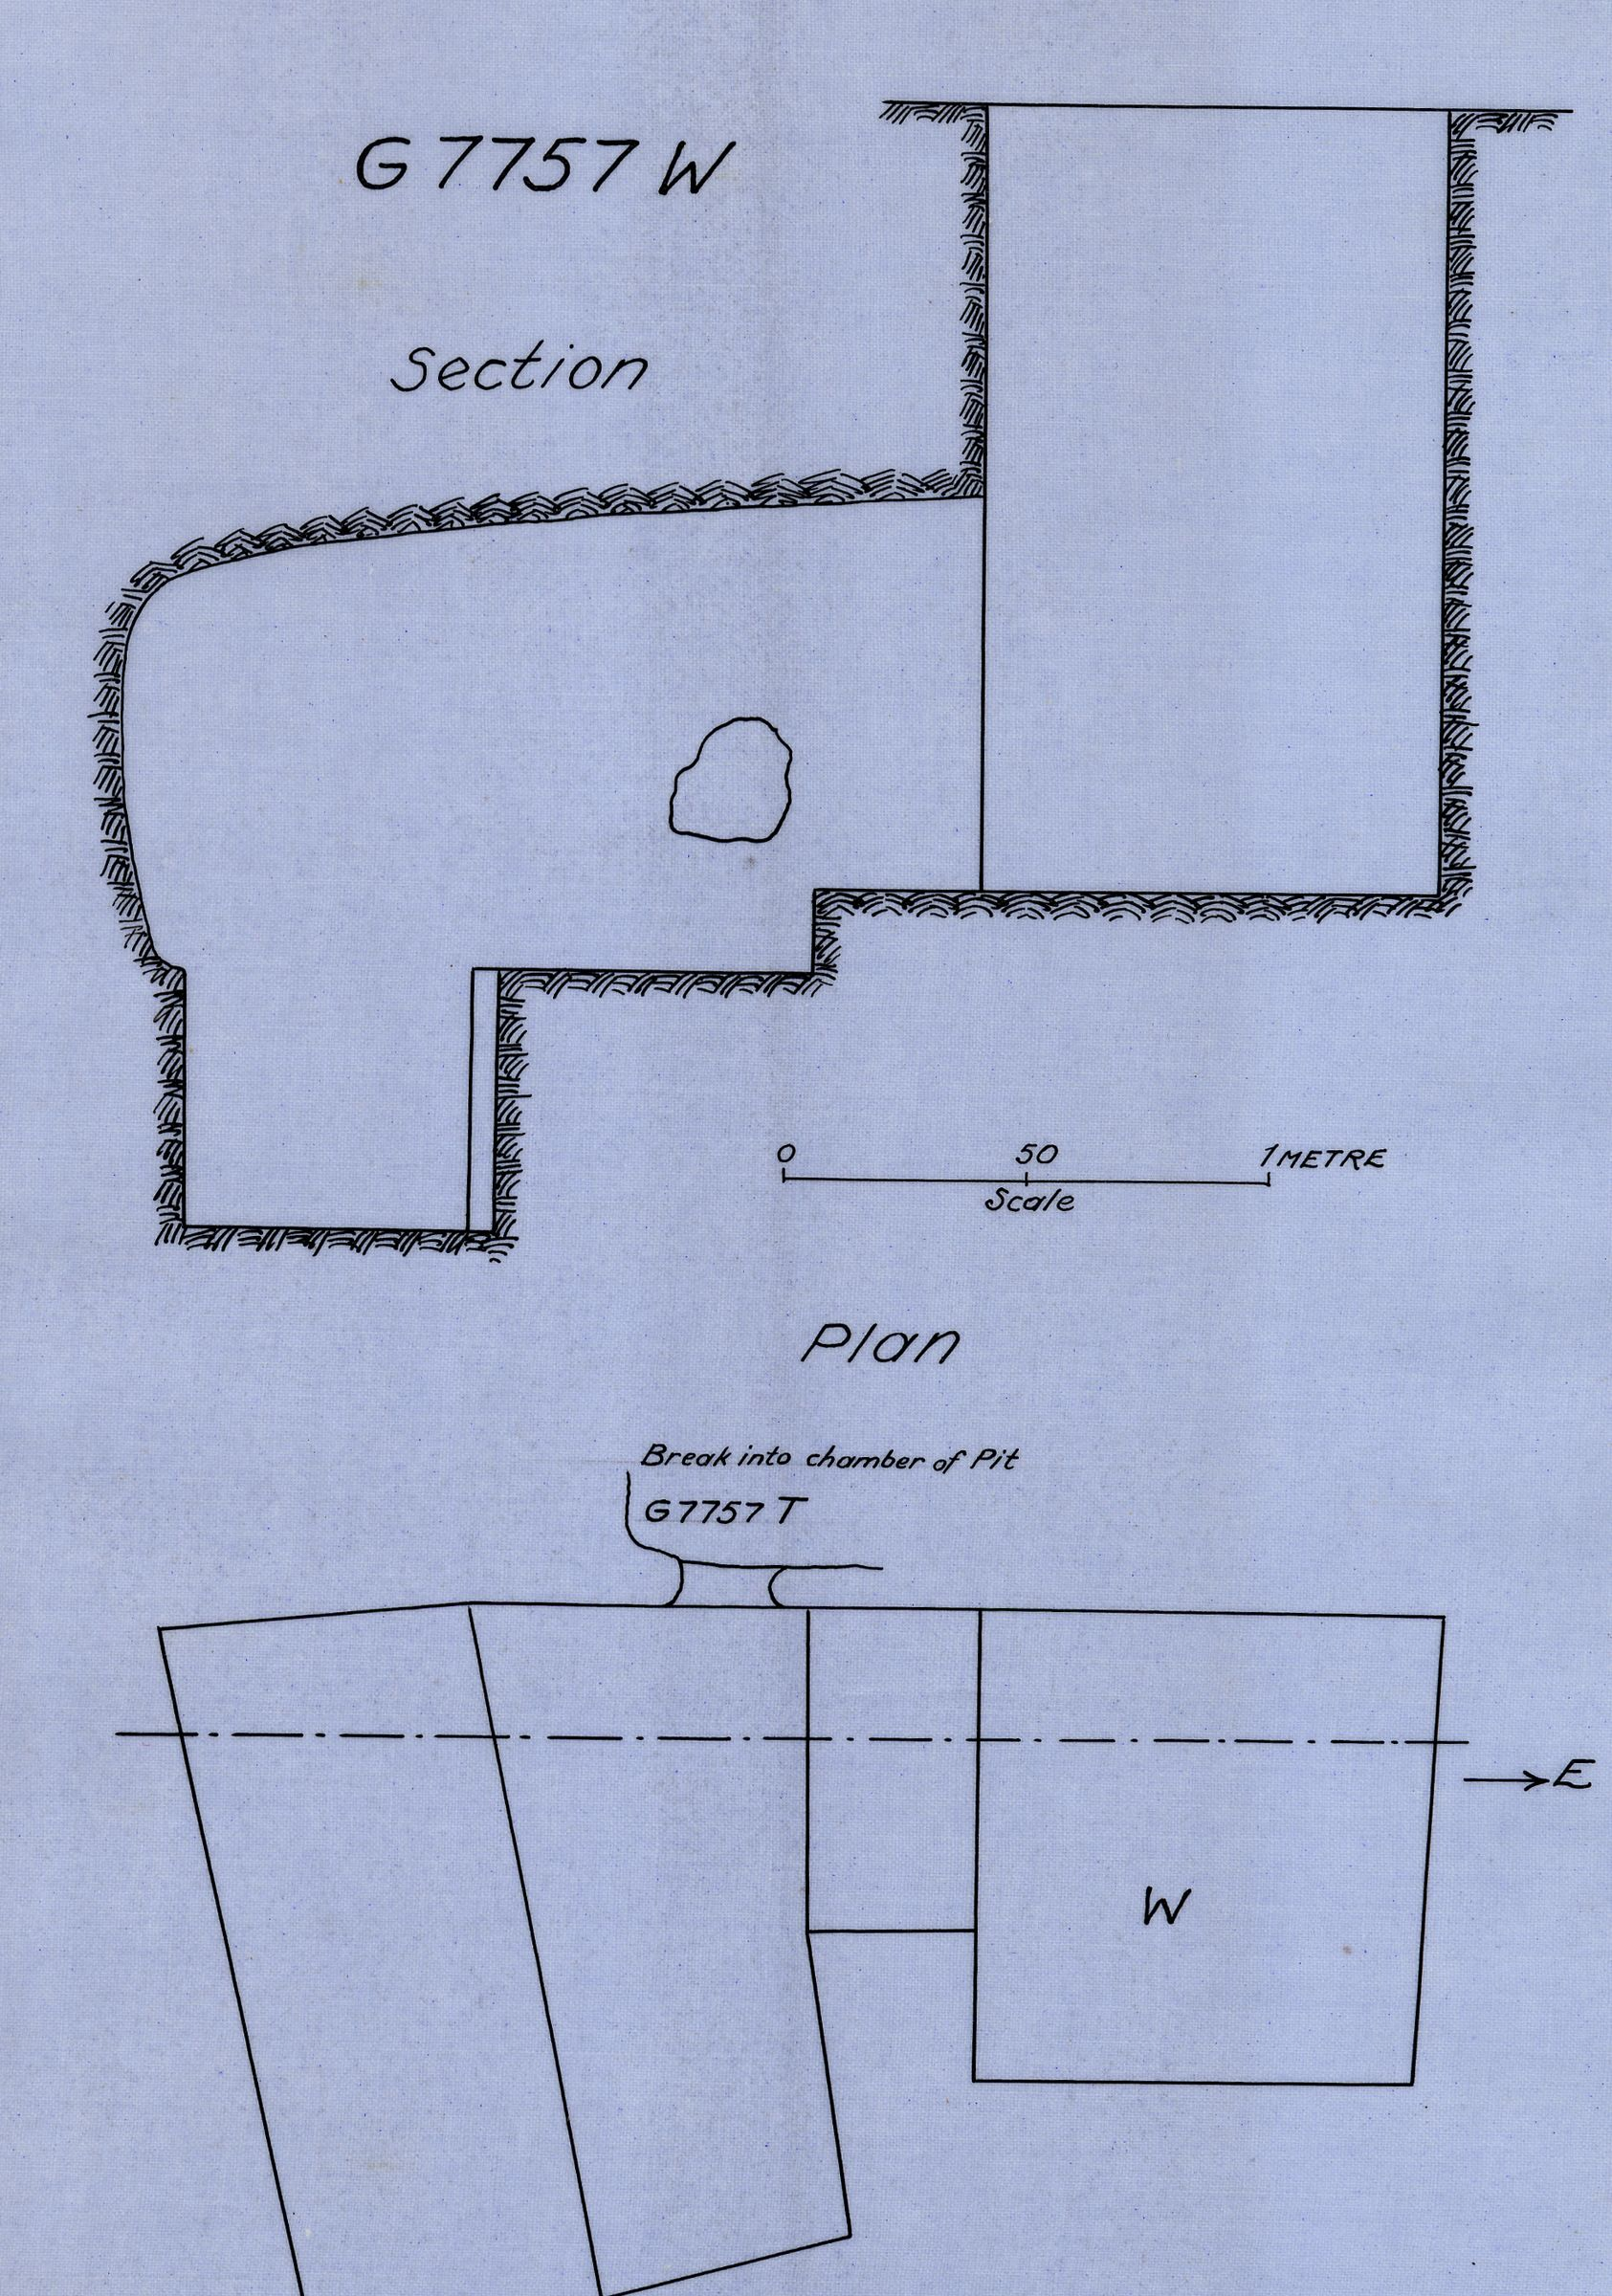 Maps and plans: G 7757, Shaft W